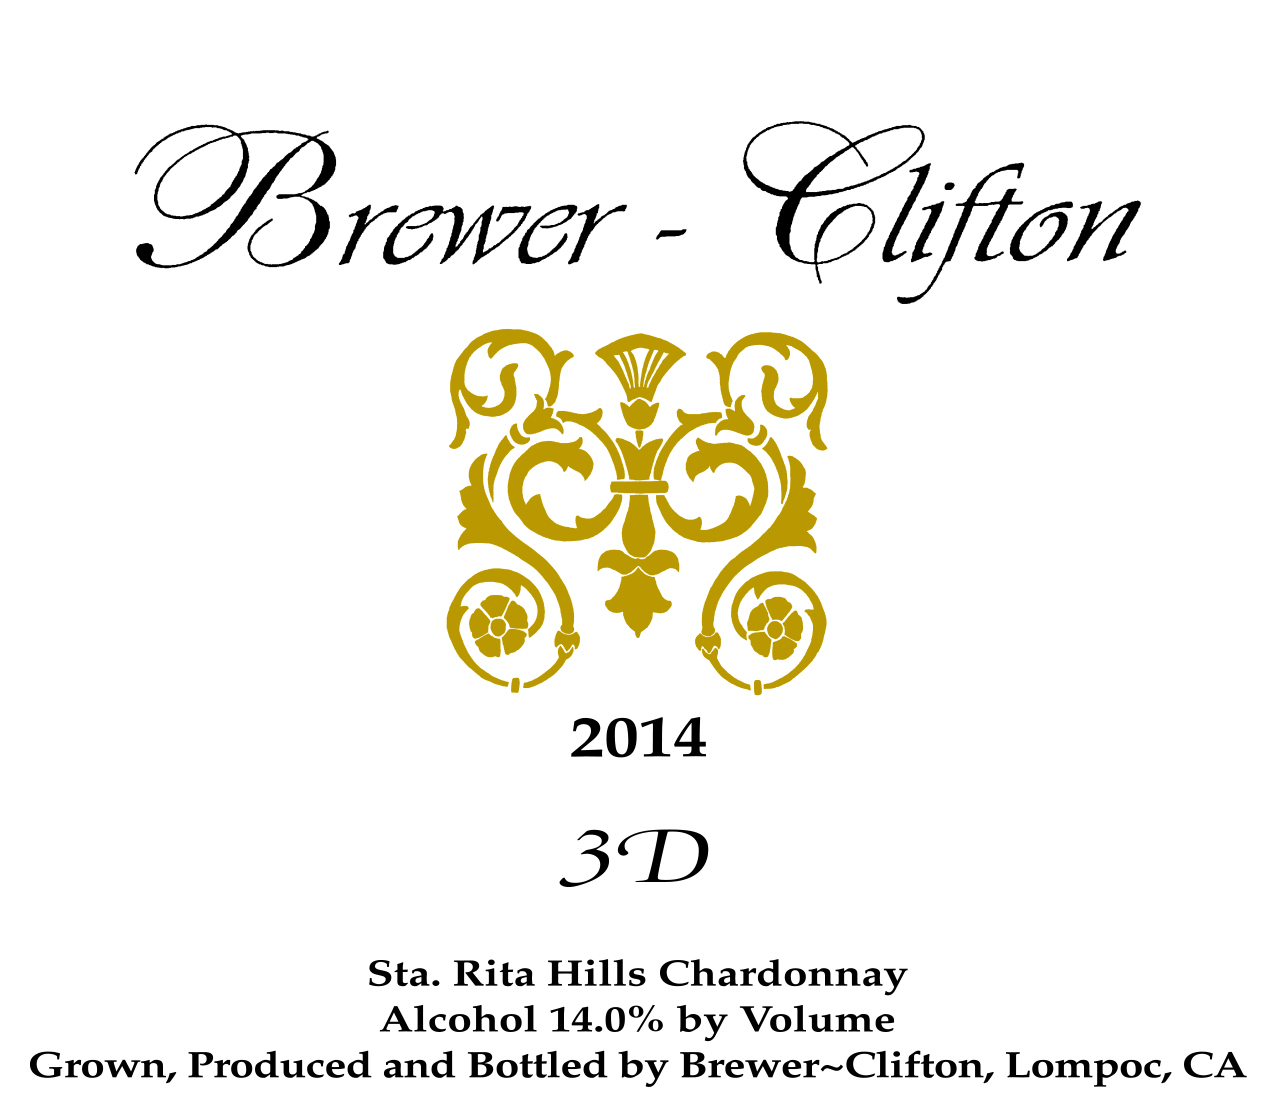 2014 Brewer-Clifton Chardonnay 3 D Vineyard